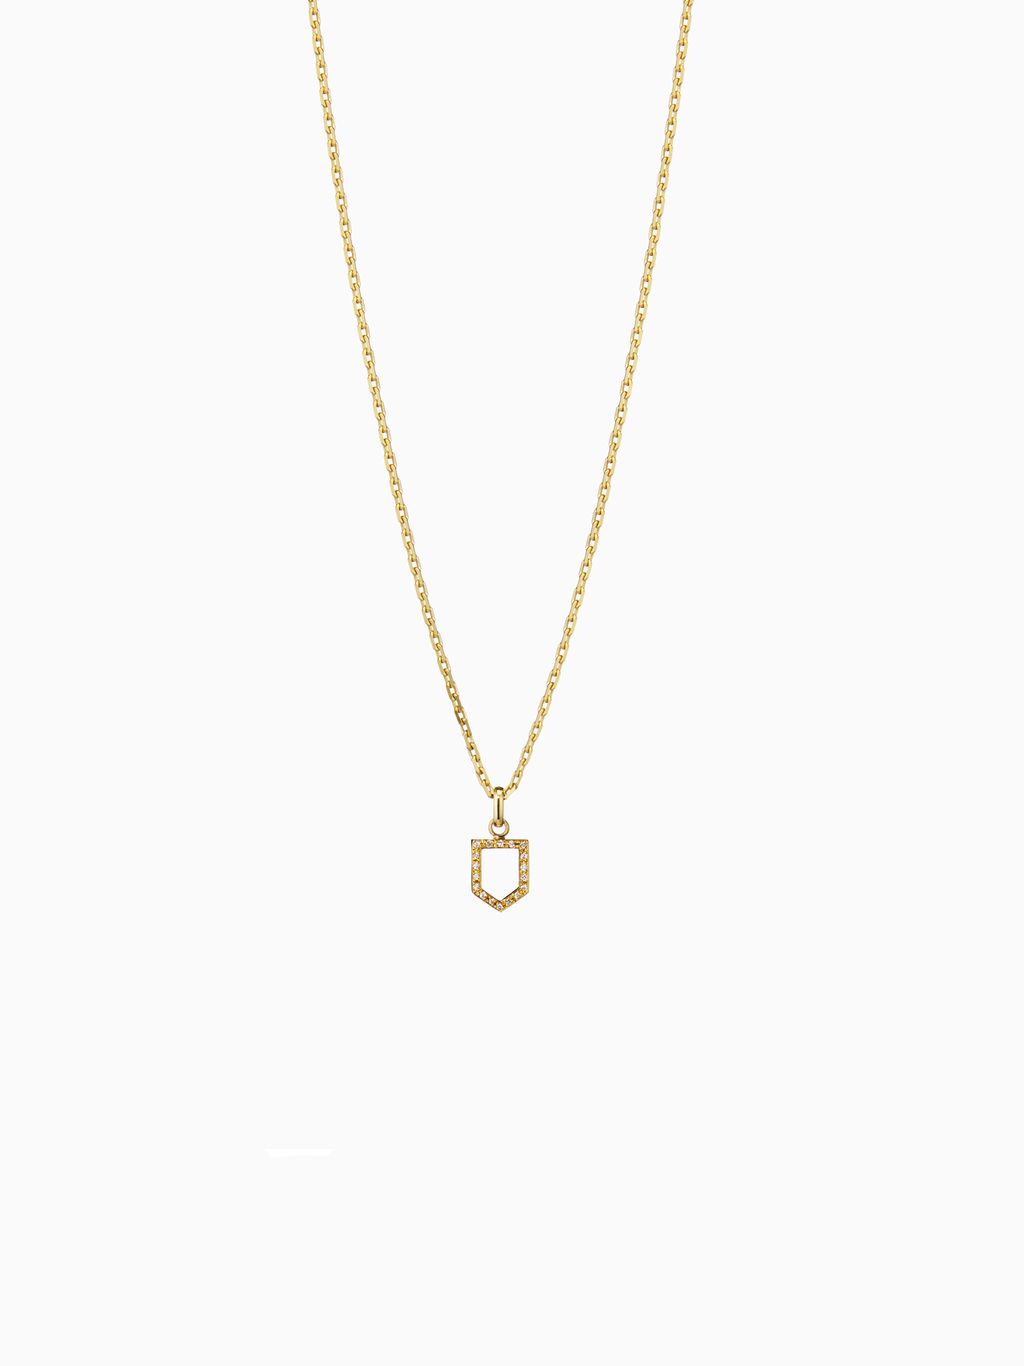 Numeral.0 S / Pendant / Diamond / Gold